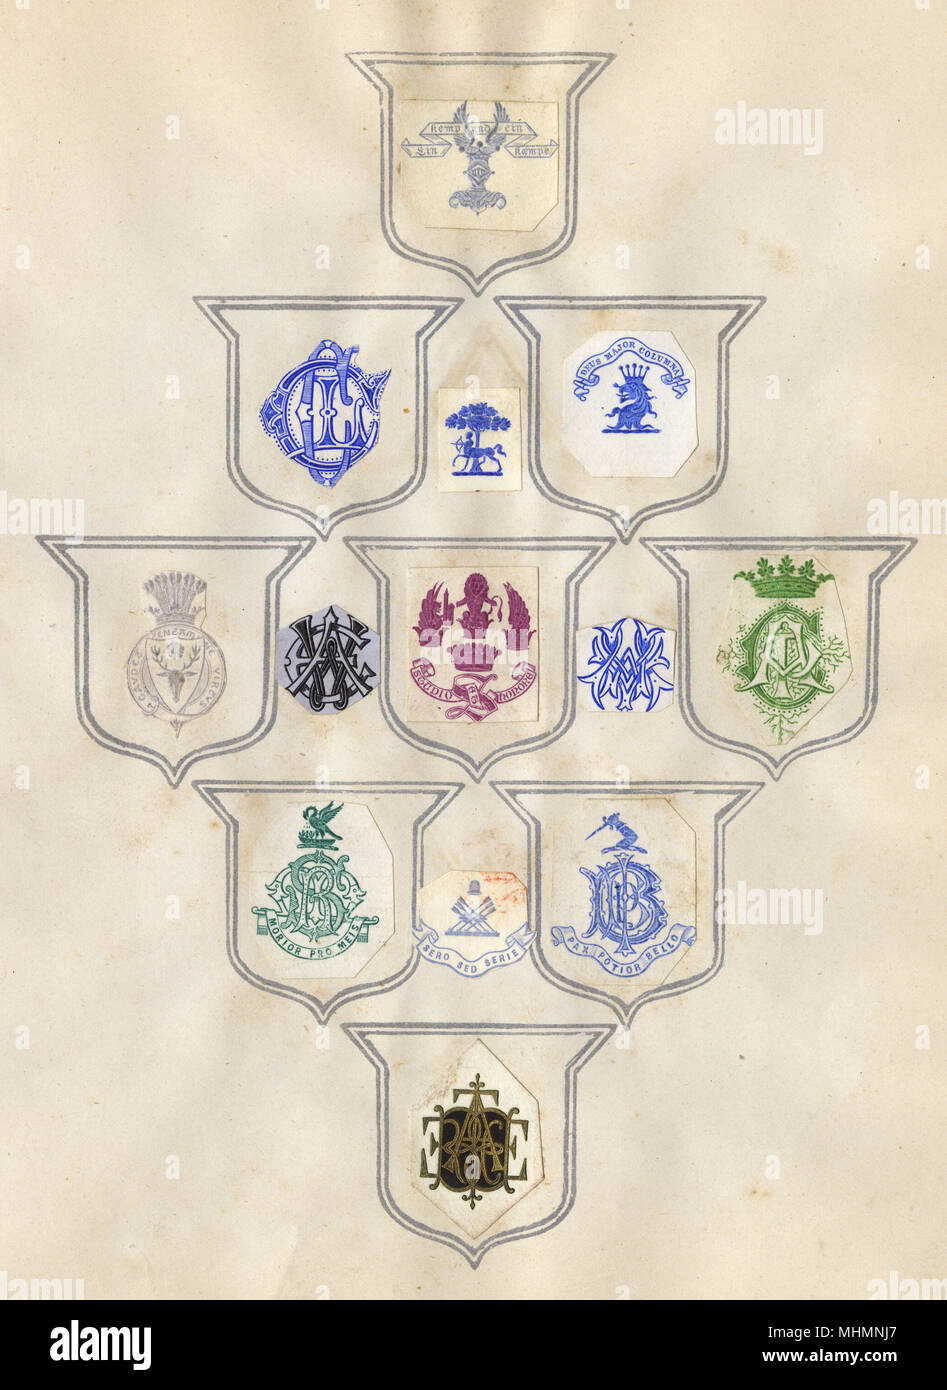 Loose page from a former scrapbook of crests and heraldry featuring family crests, coats of arms and many devices, shields, monograms and mottos!     Date: late 19th century - Stock Image